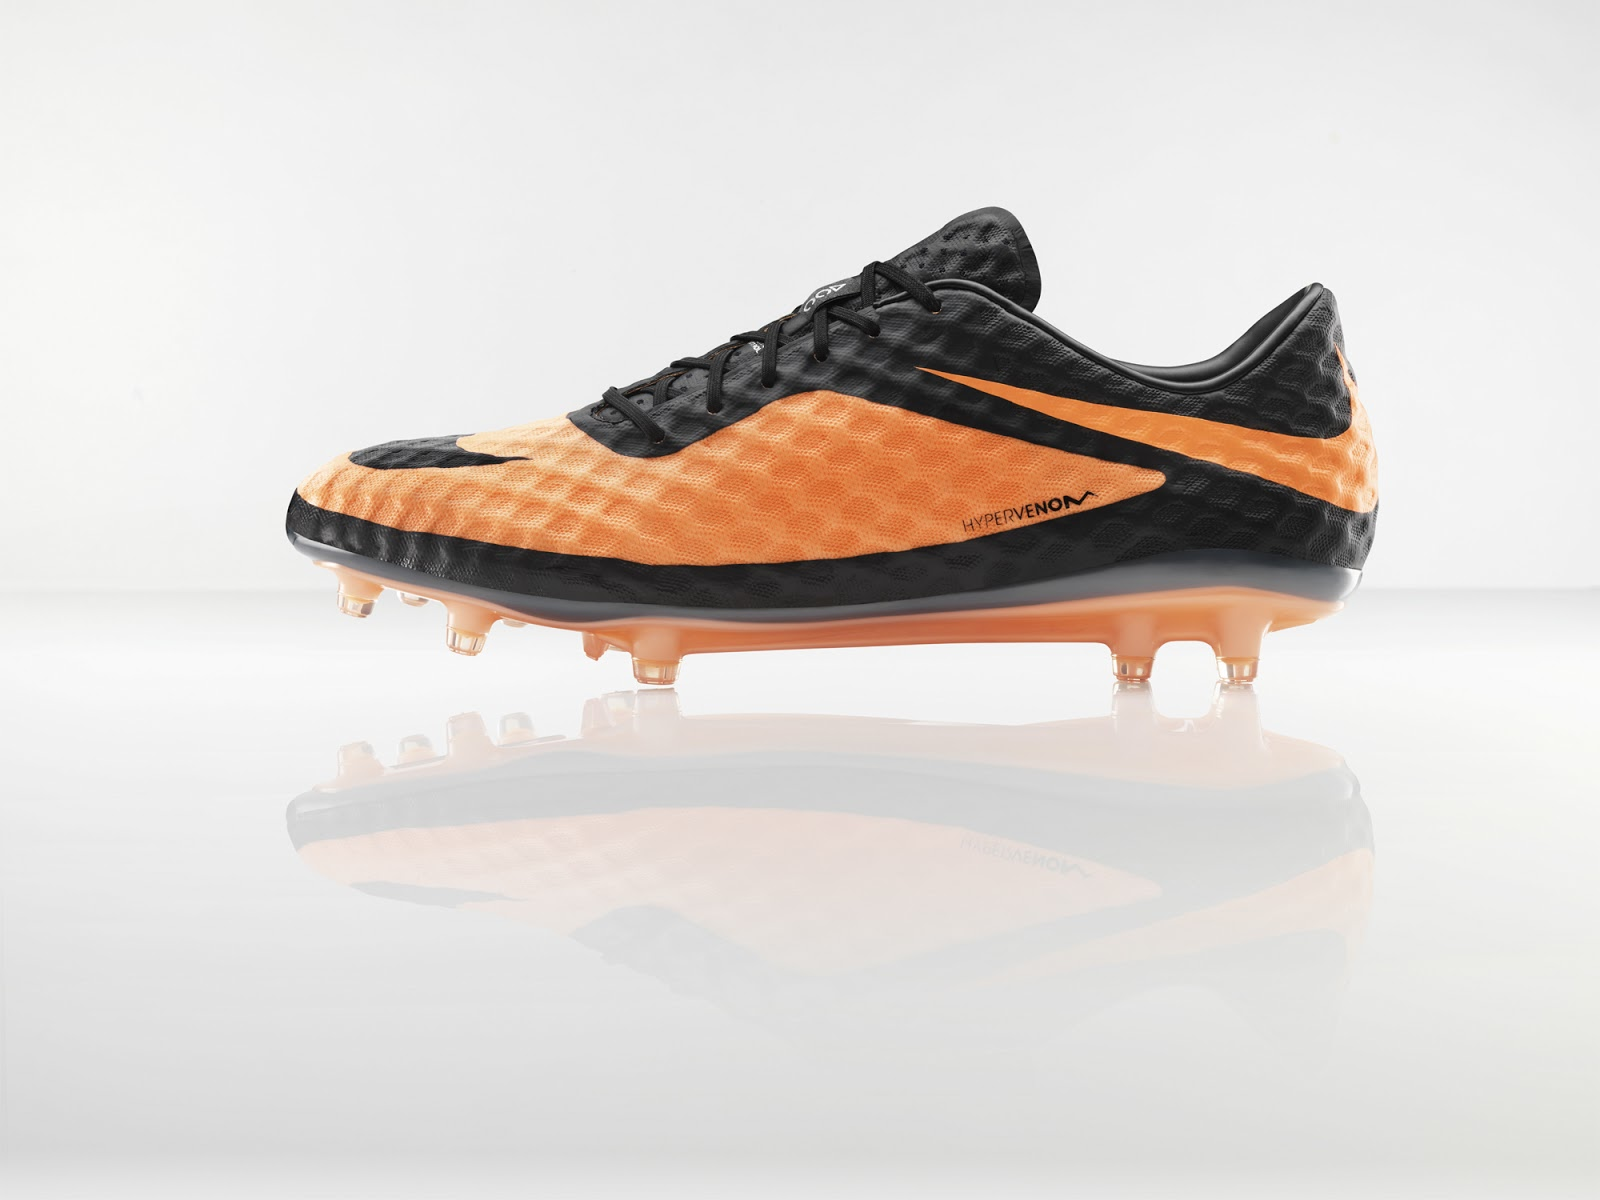 0f16bf61ea10 Nike Hypervenom: New Football Boot for New Breed of Player | DISKIOFF